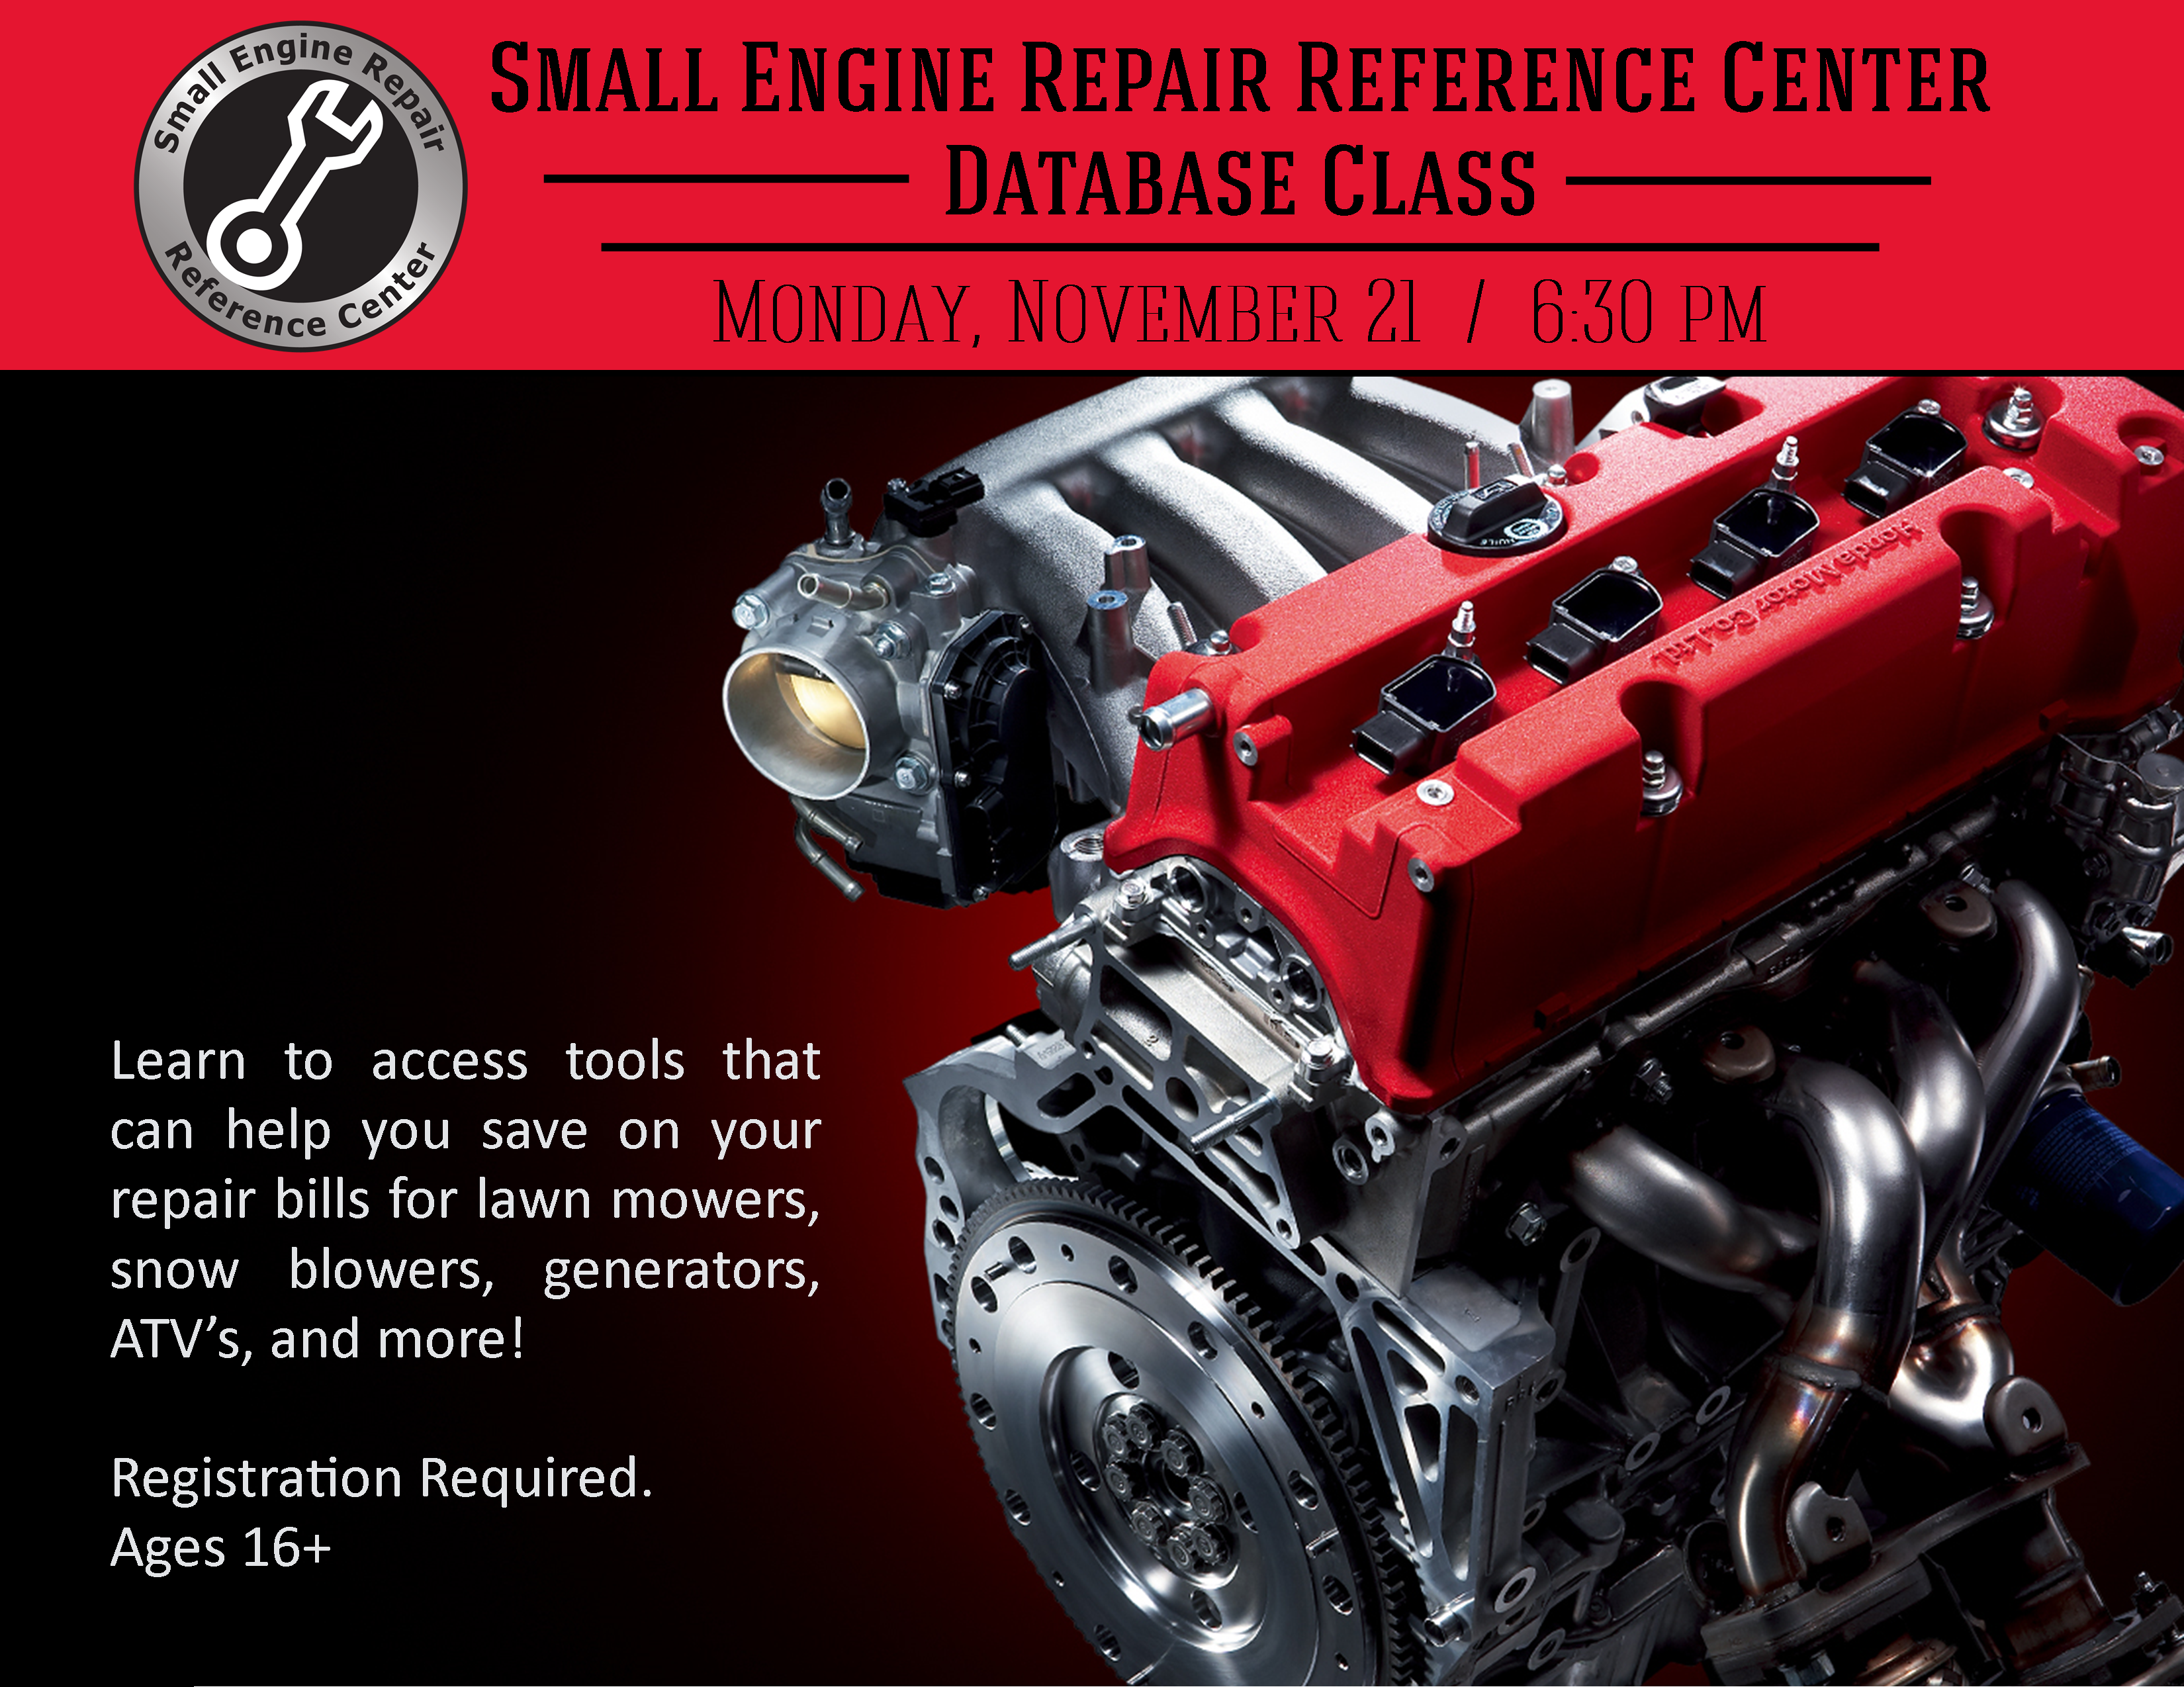 Small Engine Repair Reference Center Class Monday